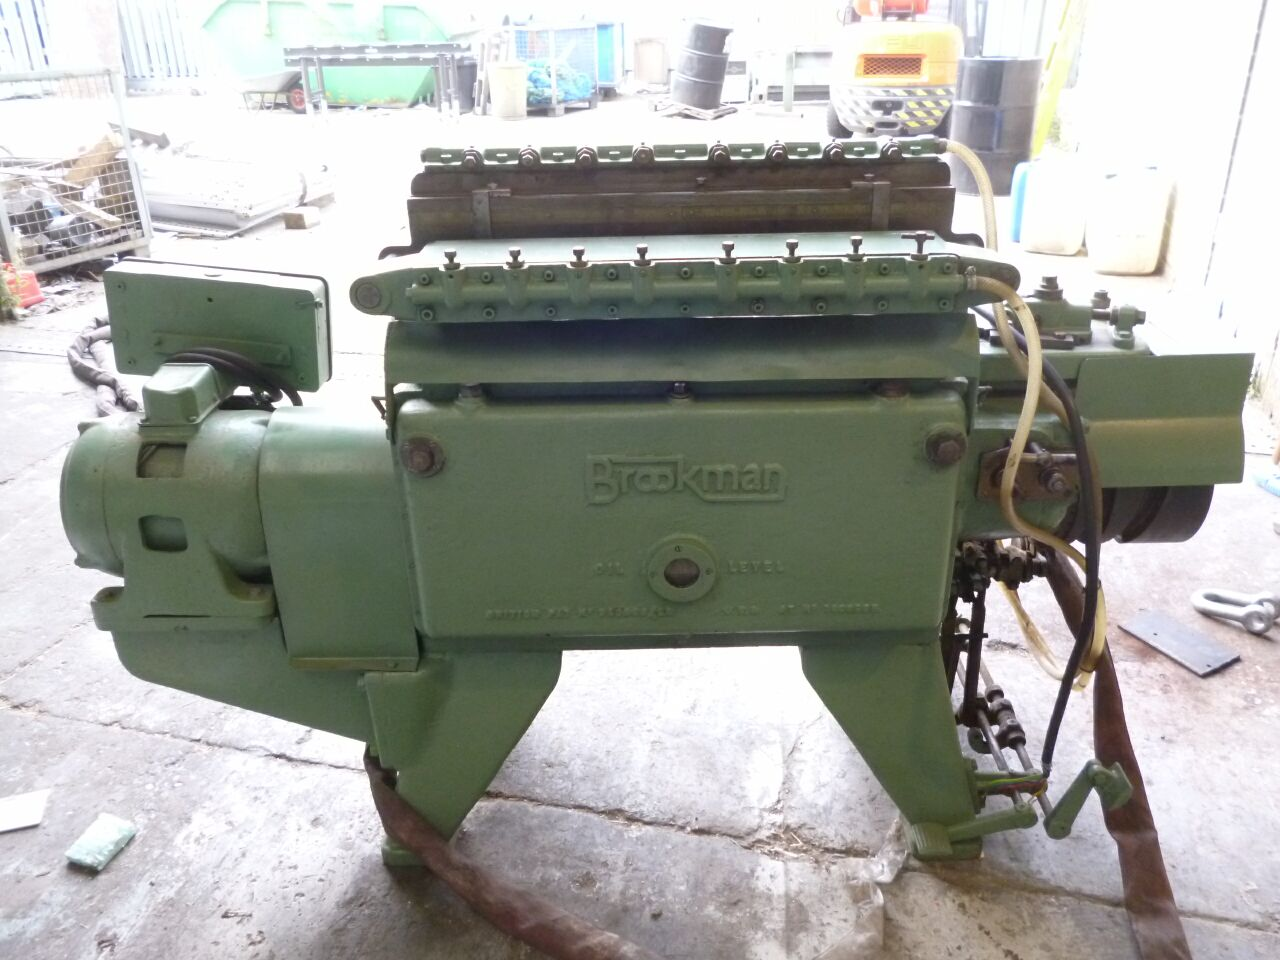 BROOKMAN Fully Automatic Dovetailer title=